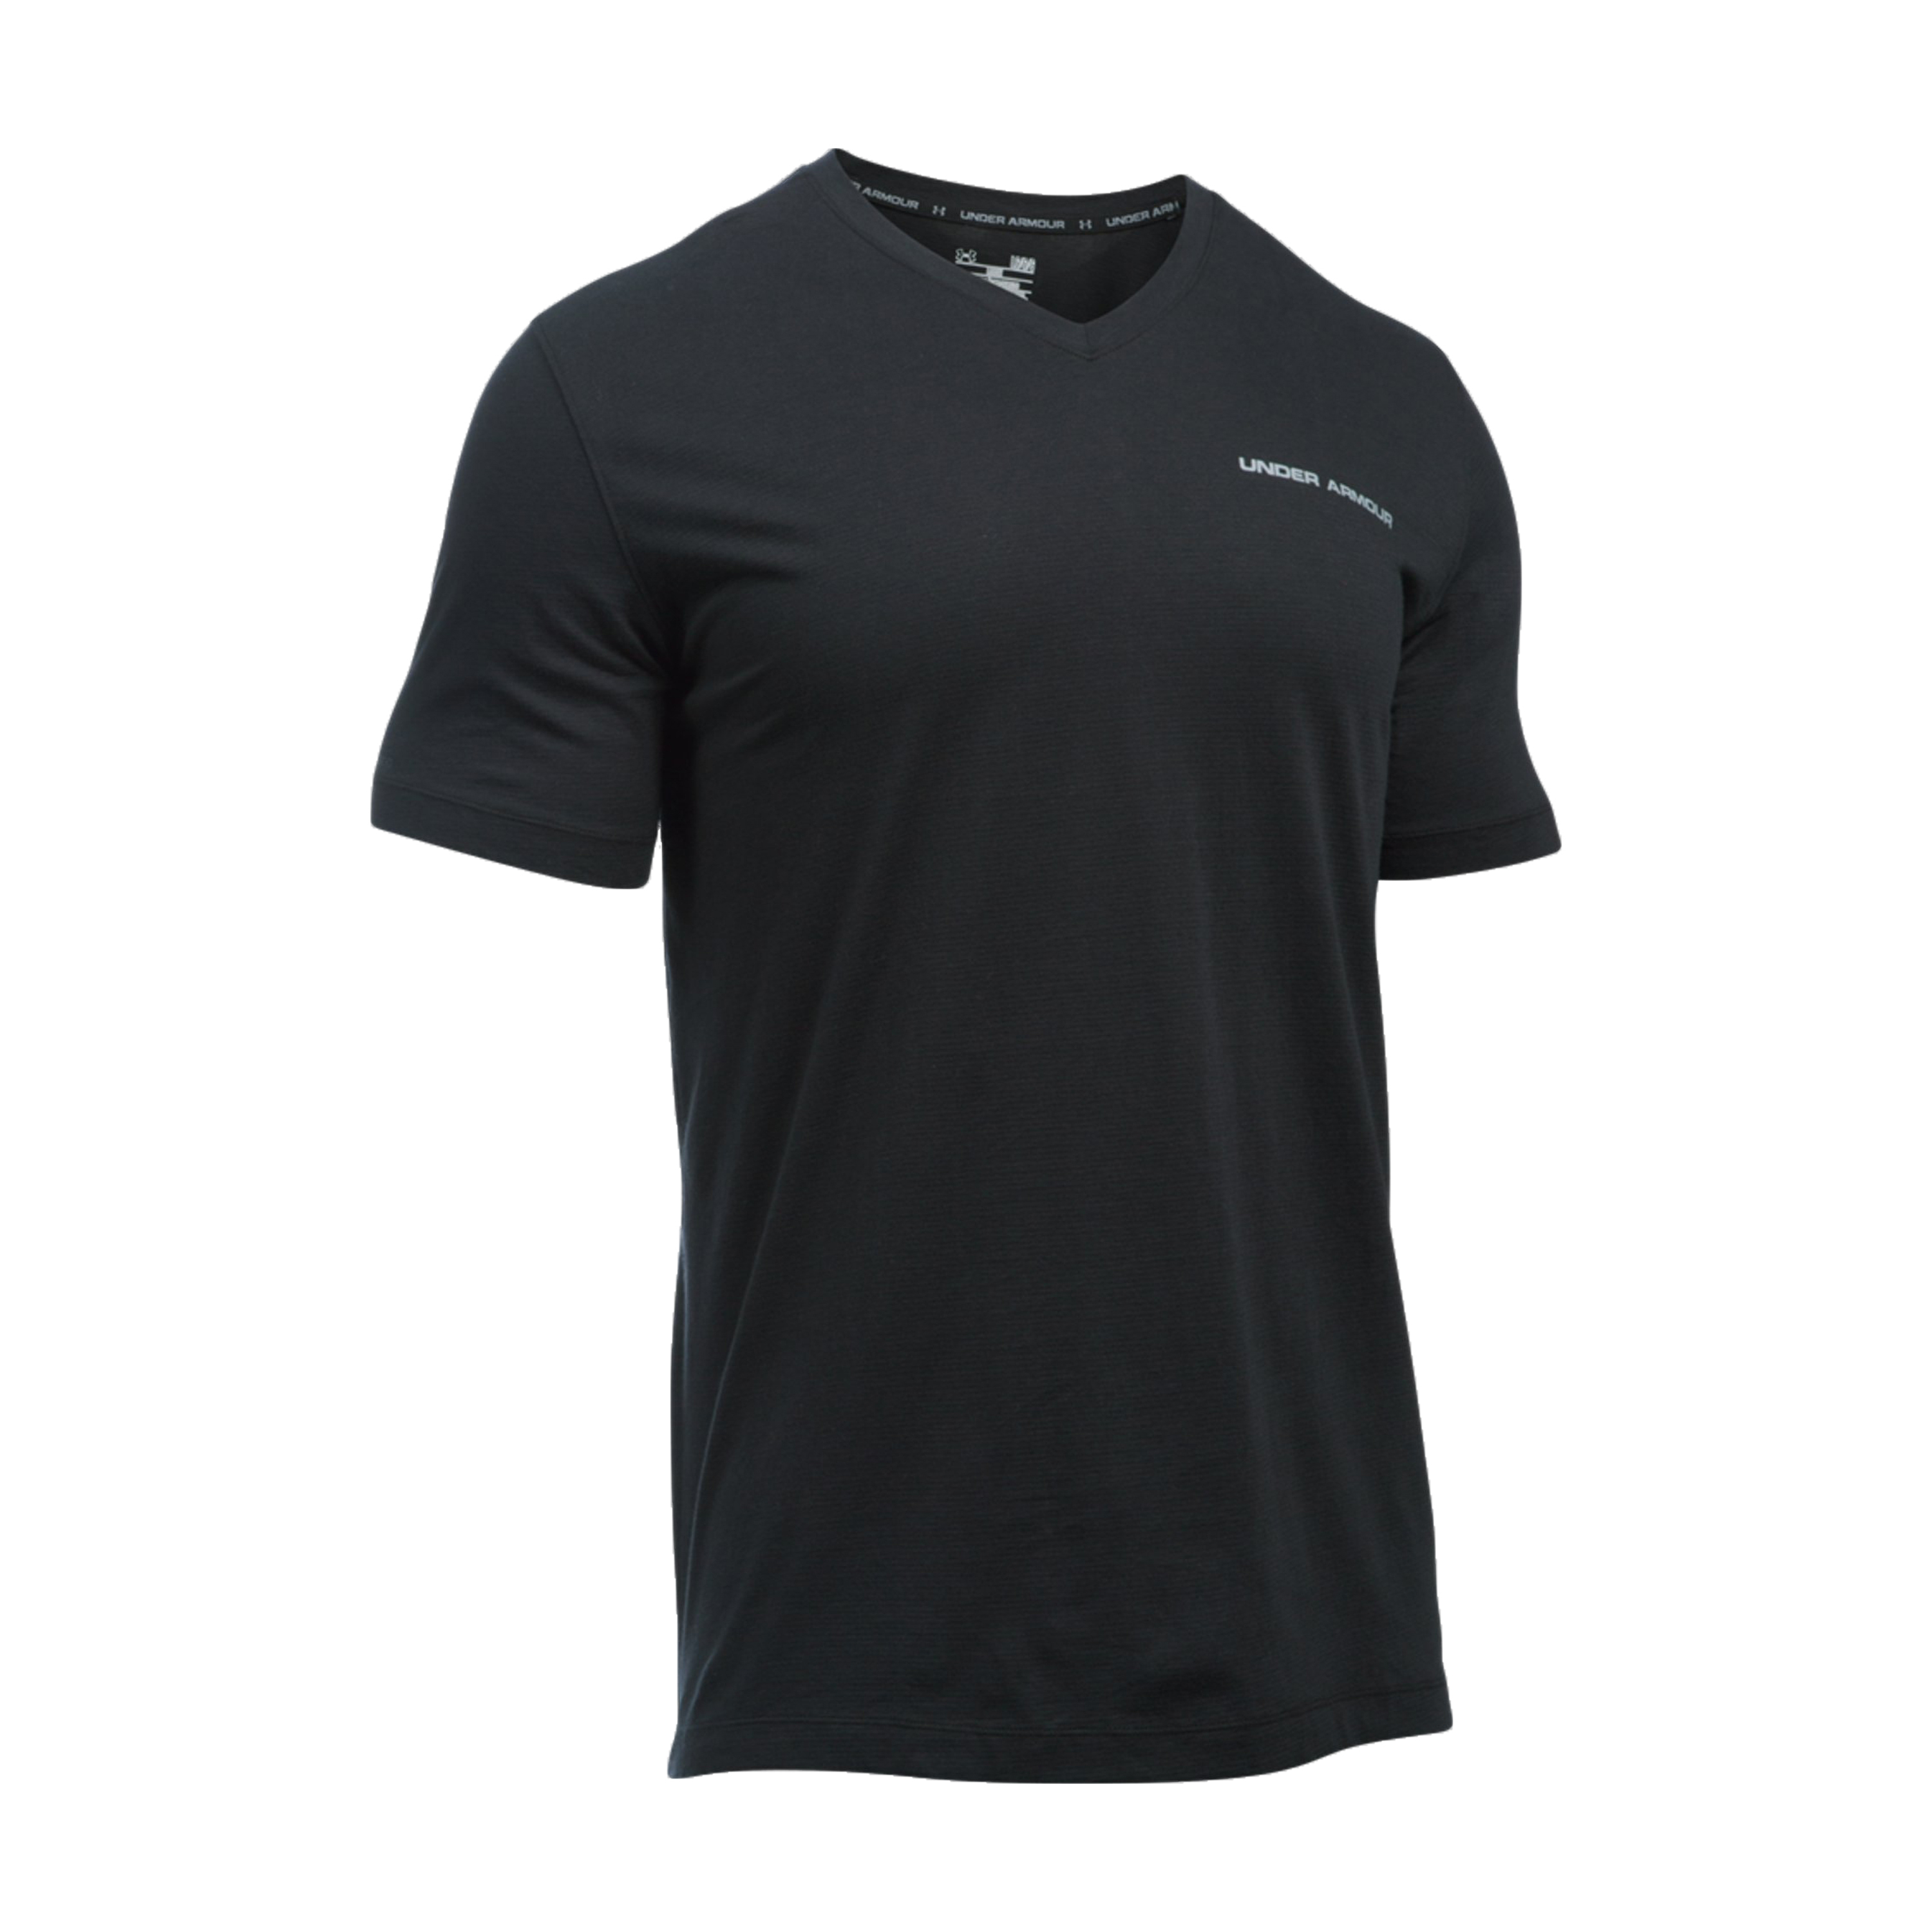 Under Armour T-Shirt V-Neck Charged Cotton schwarz